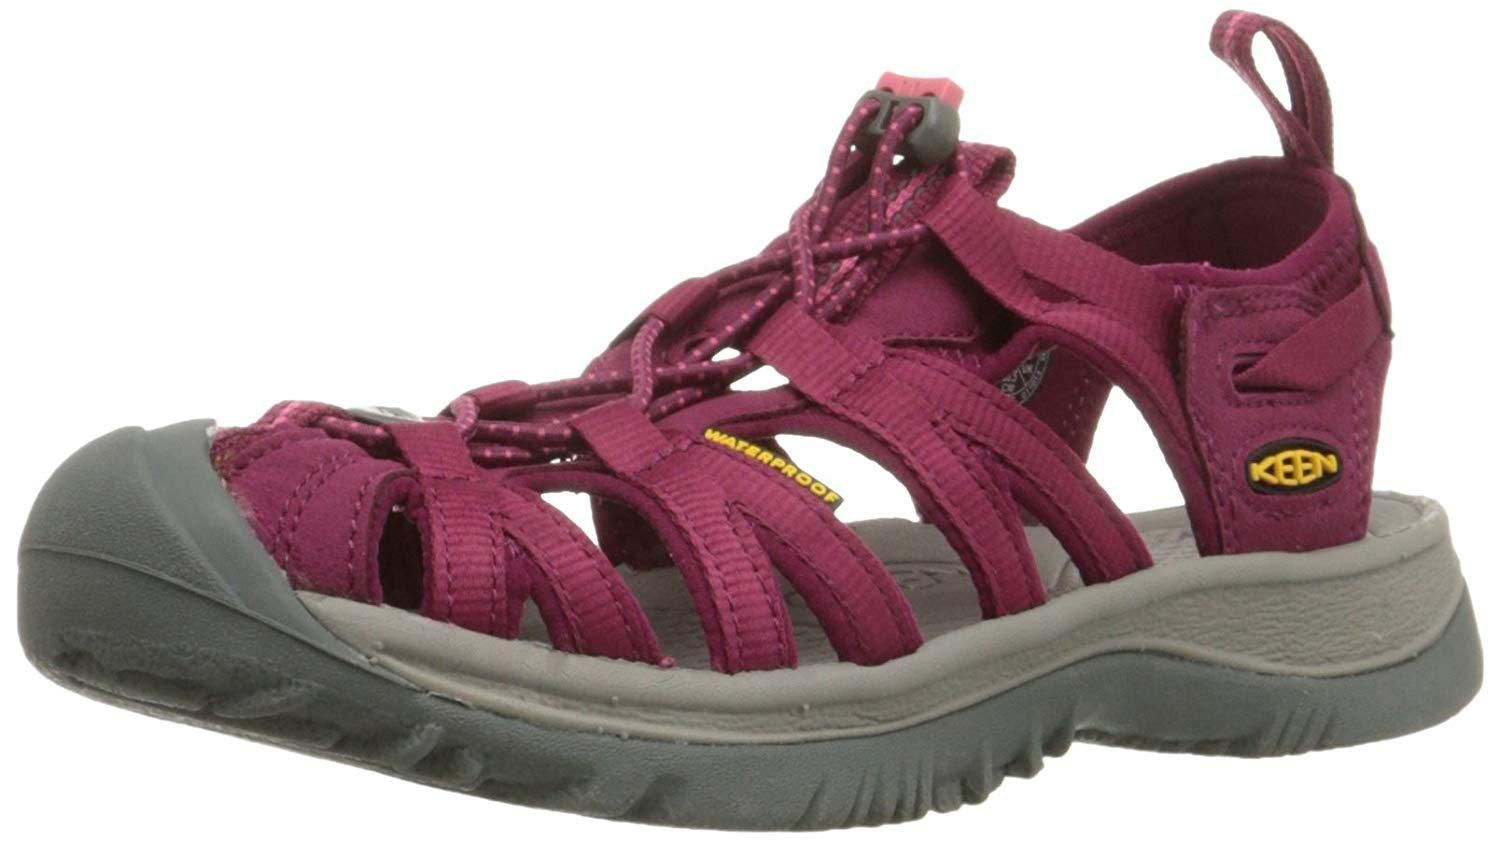 Keen Mens Newport H2 Walking Shoes Sandals Navy Blue Sports Outdoors Breathable